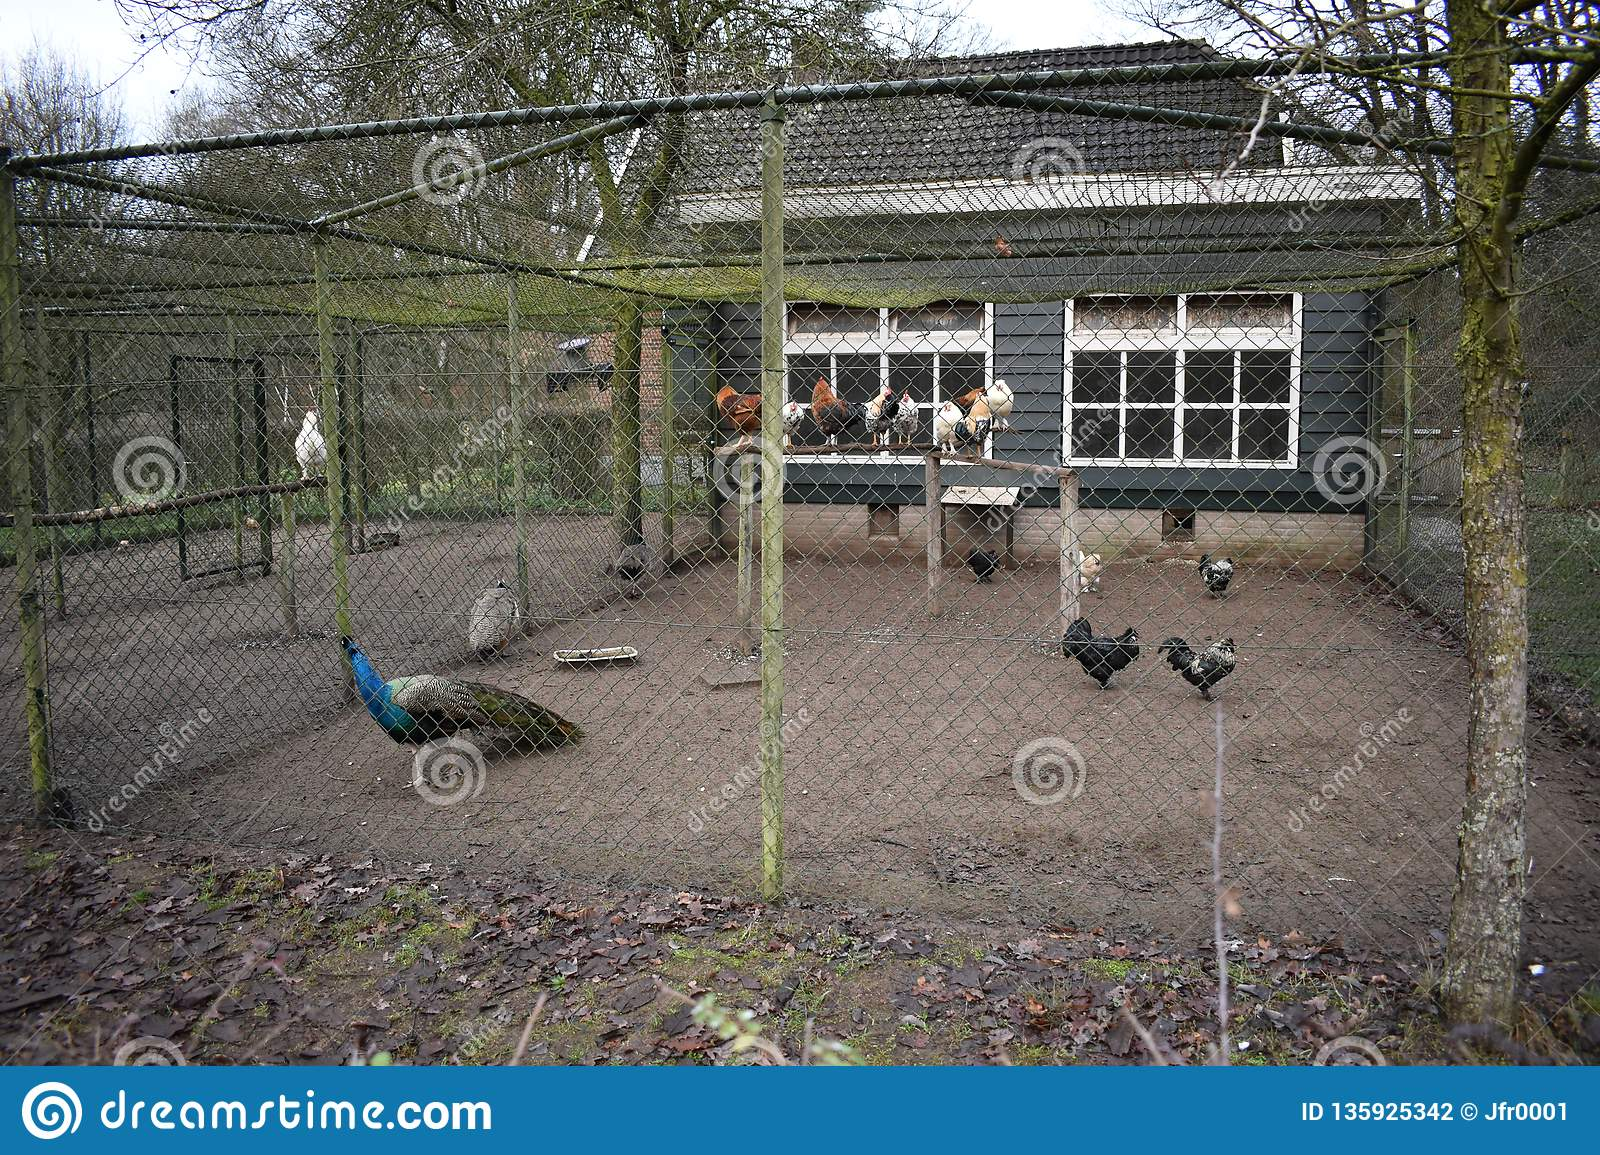 Animals in a bird cage